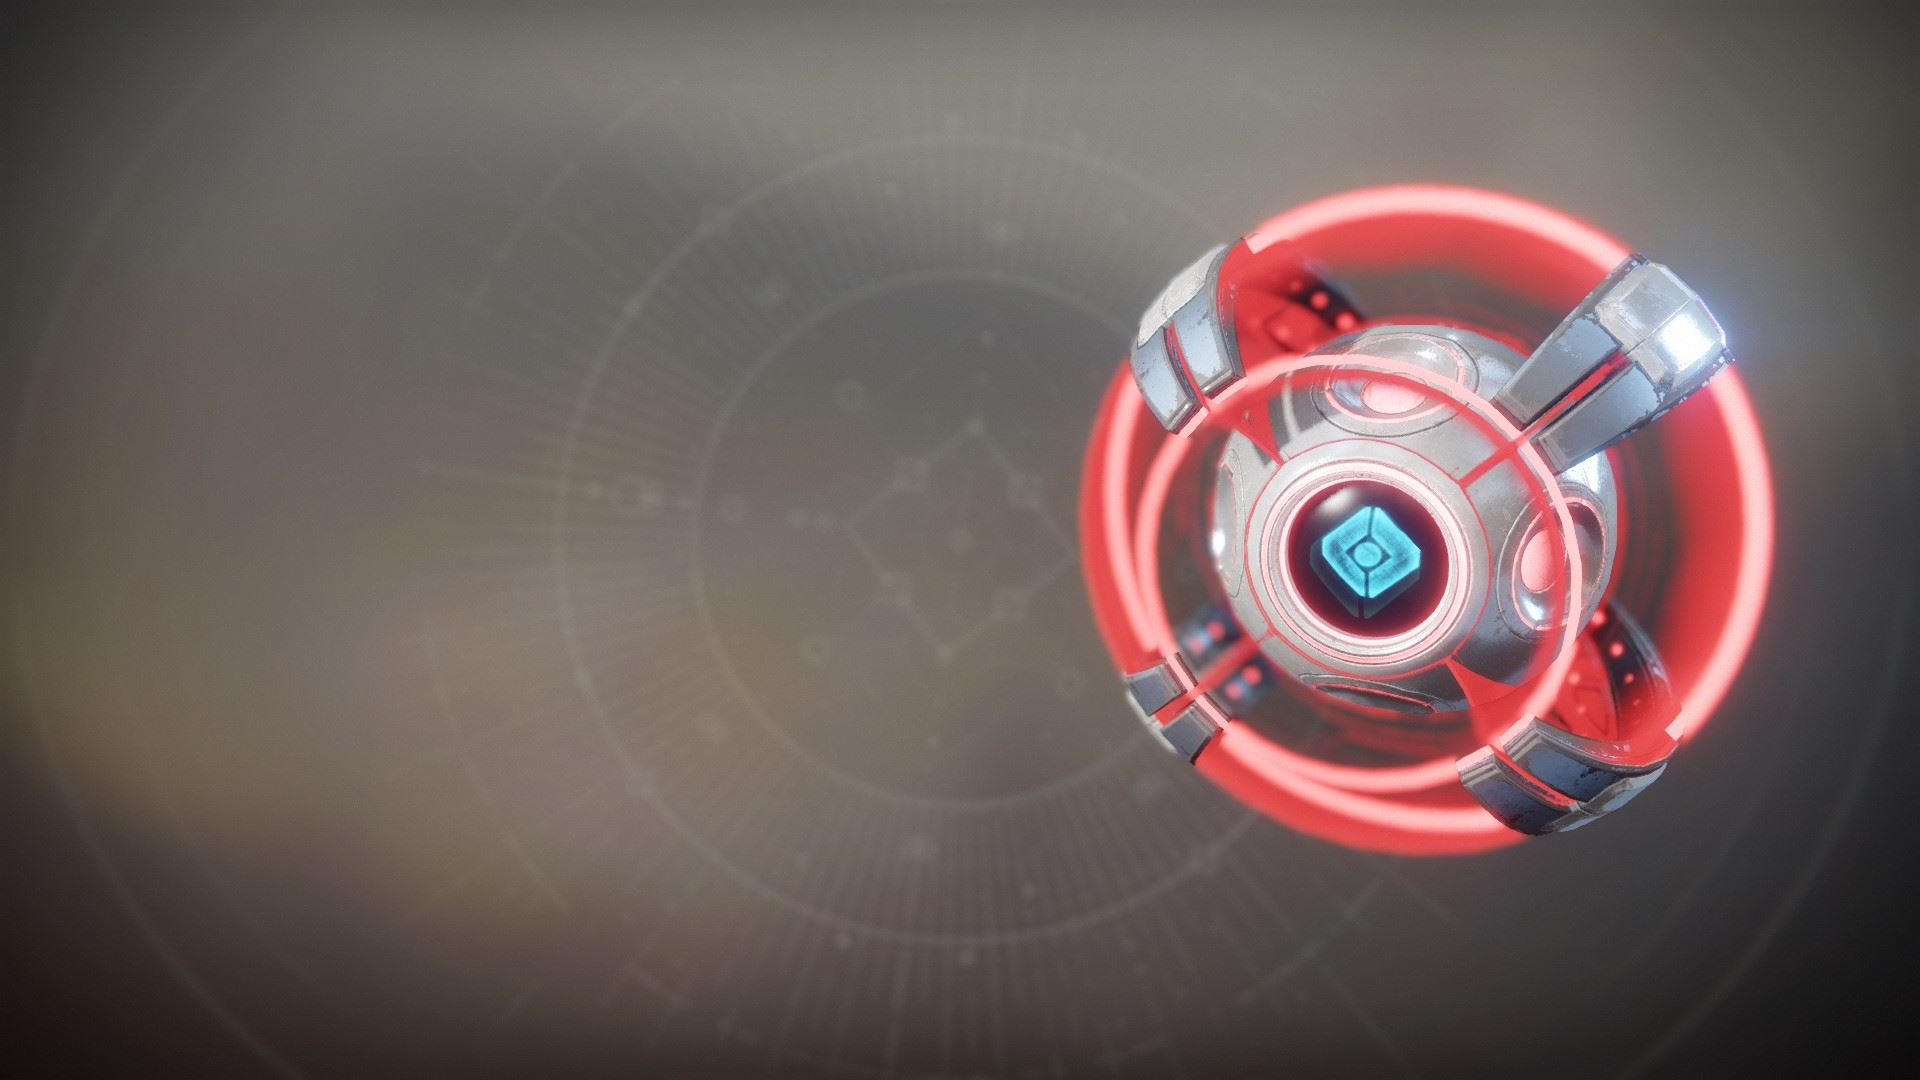 An in-game render of the Iris Pulsator Shell.